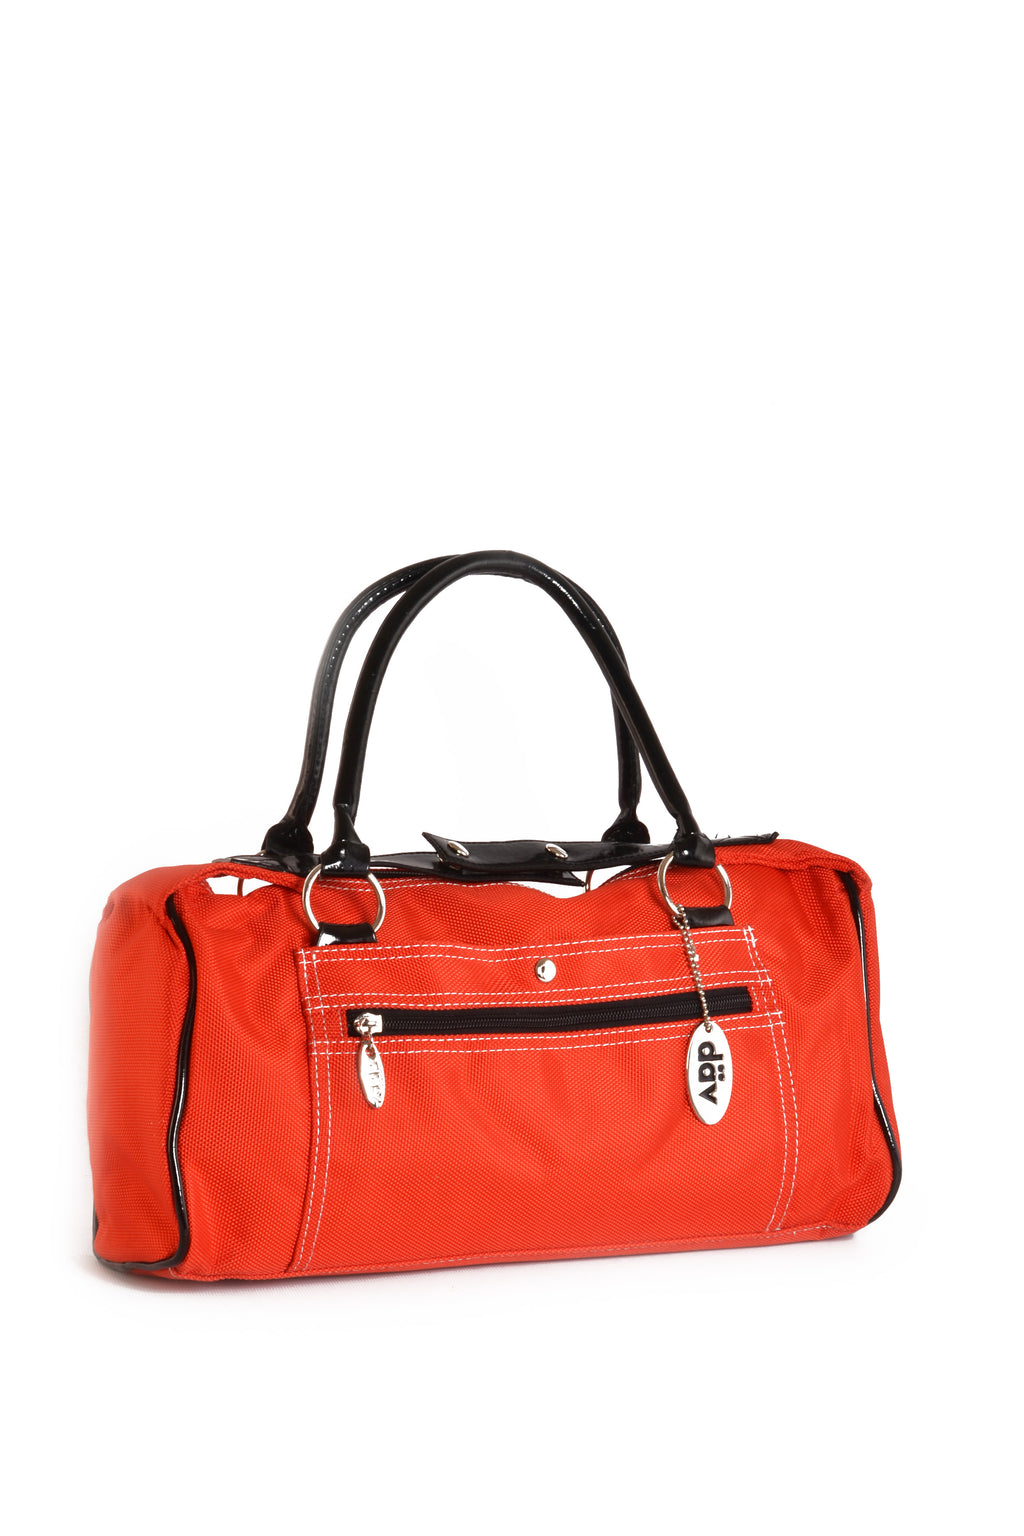 Small East West Handbag red